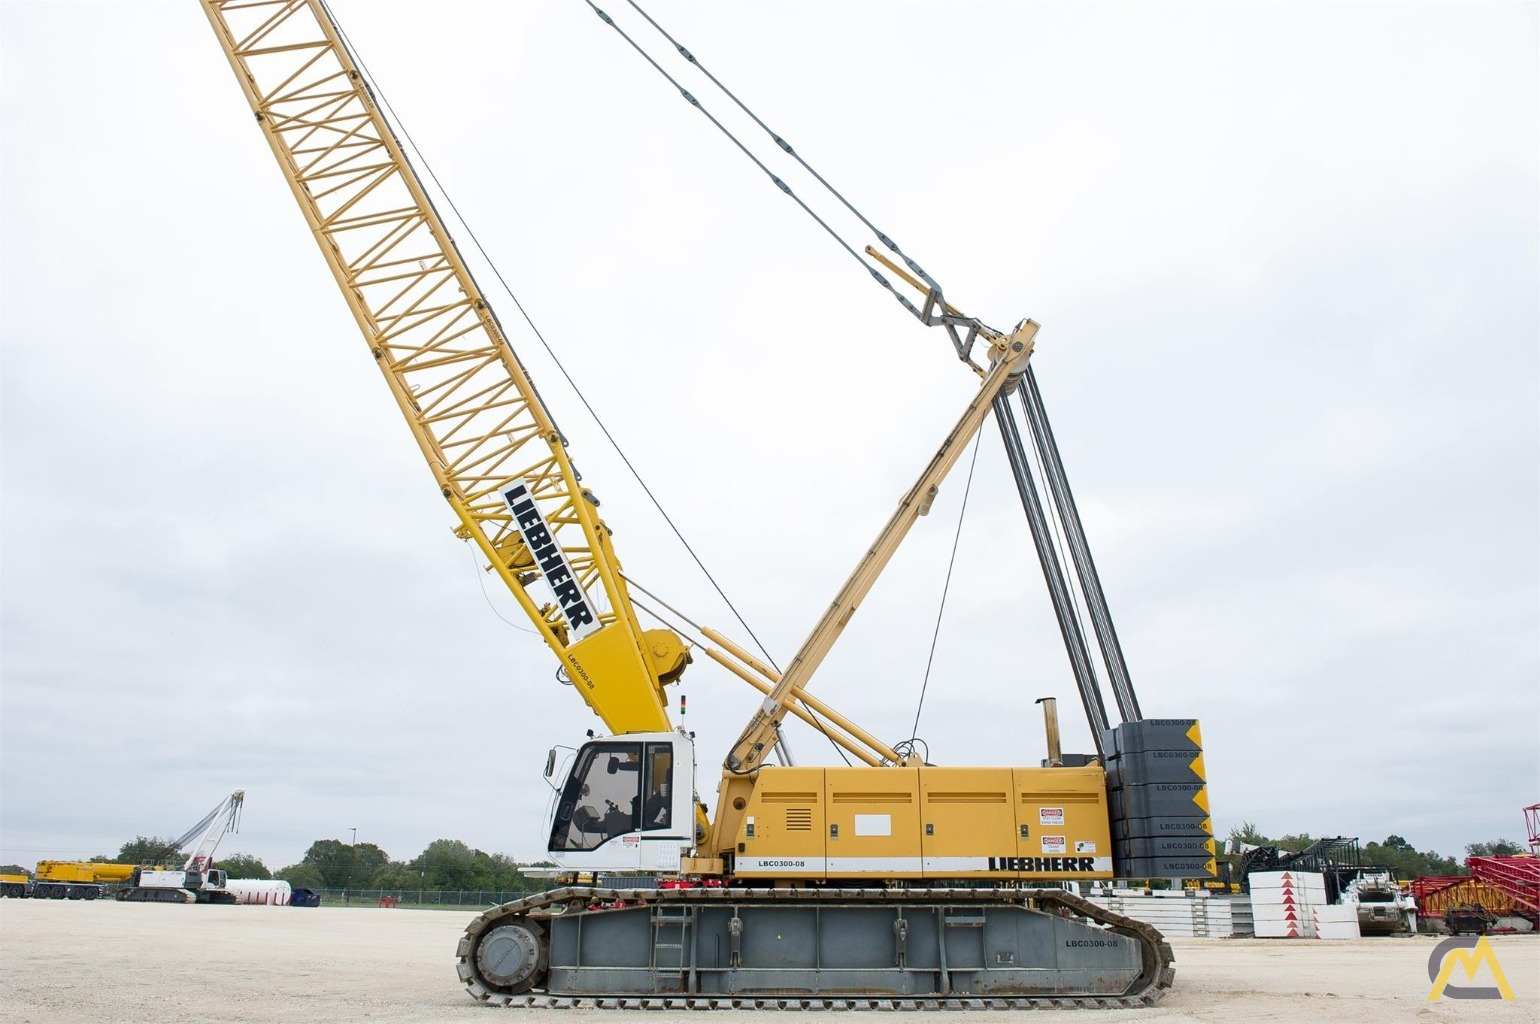 Liebherr LR 1280 300-Ton Lattice Boom Crawler Crane 1